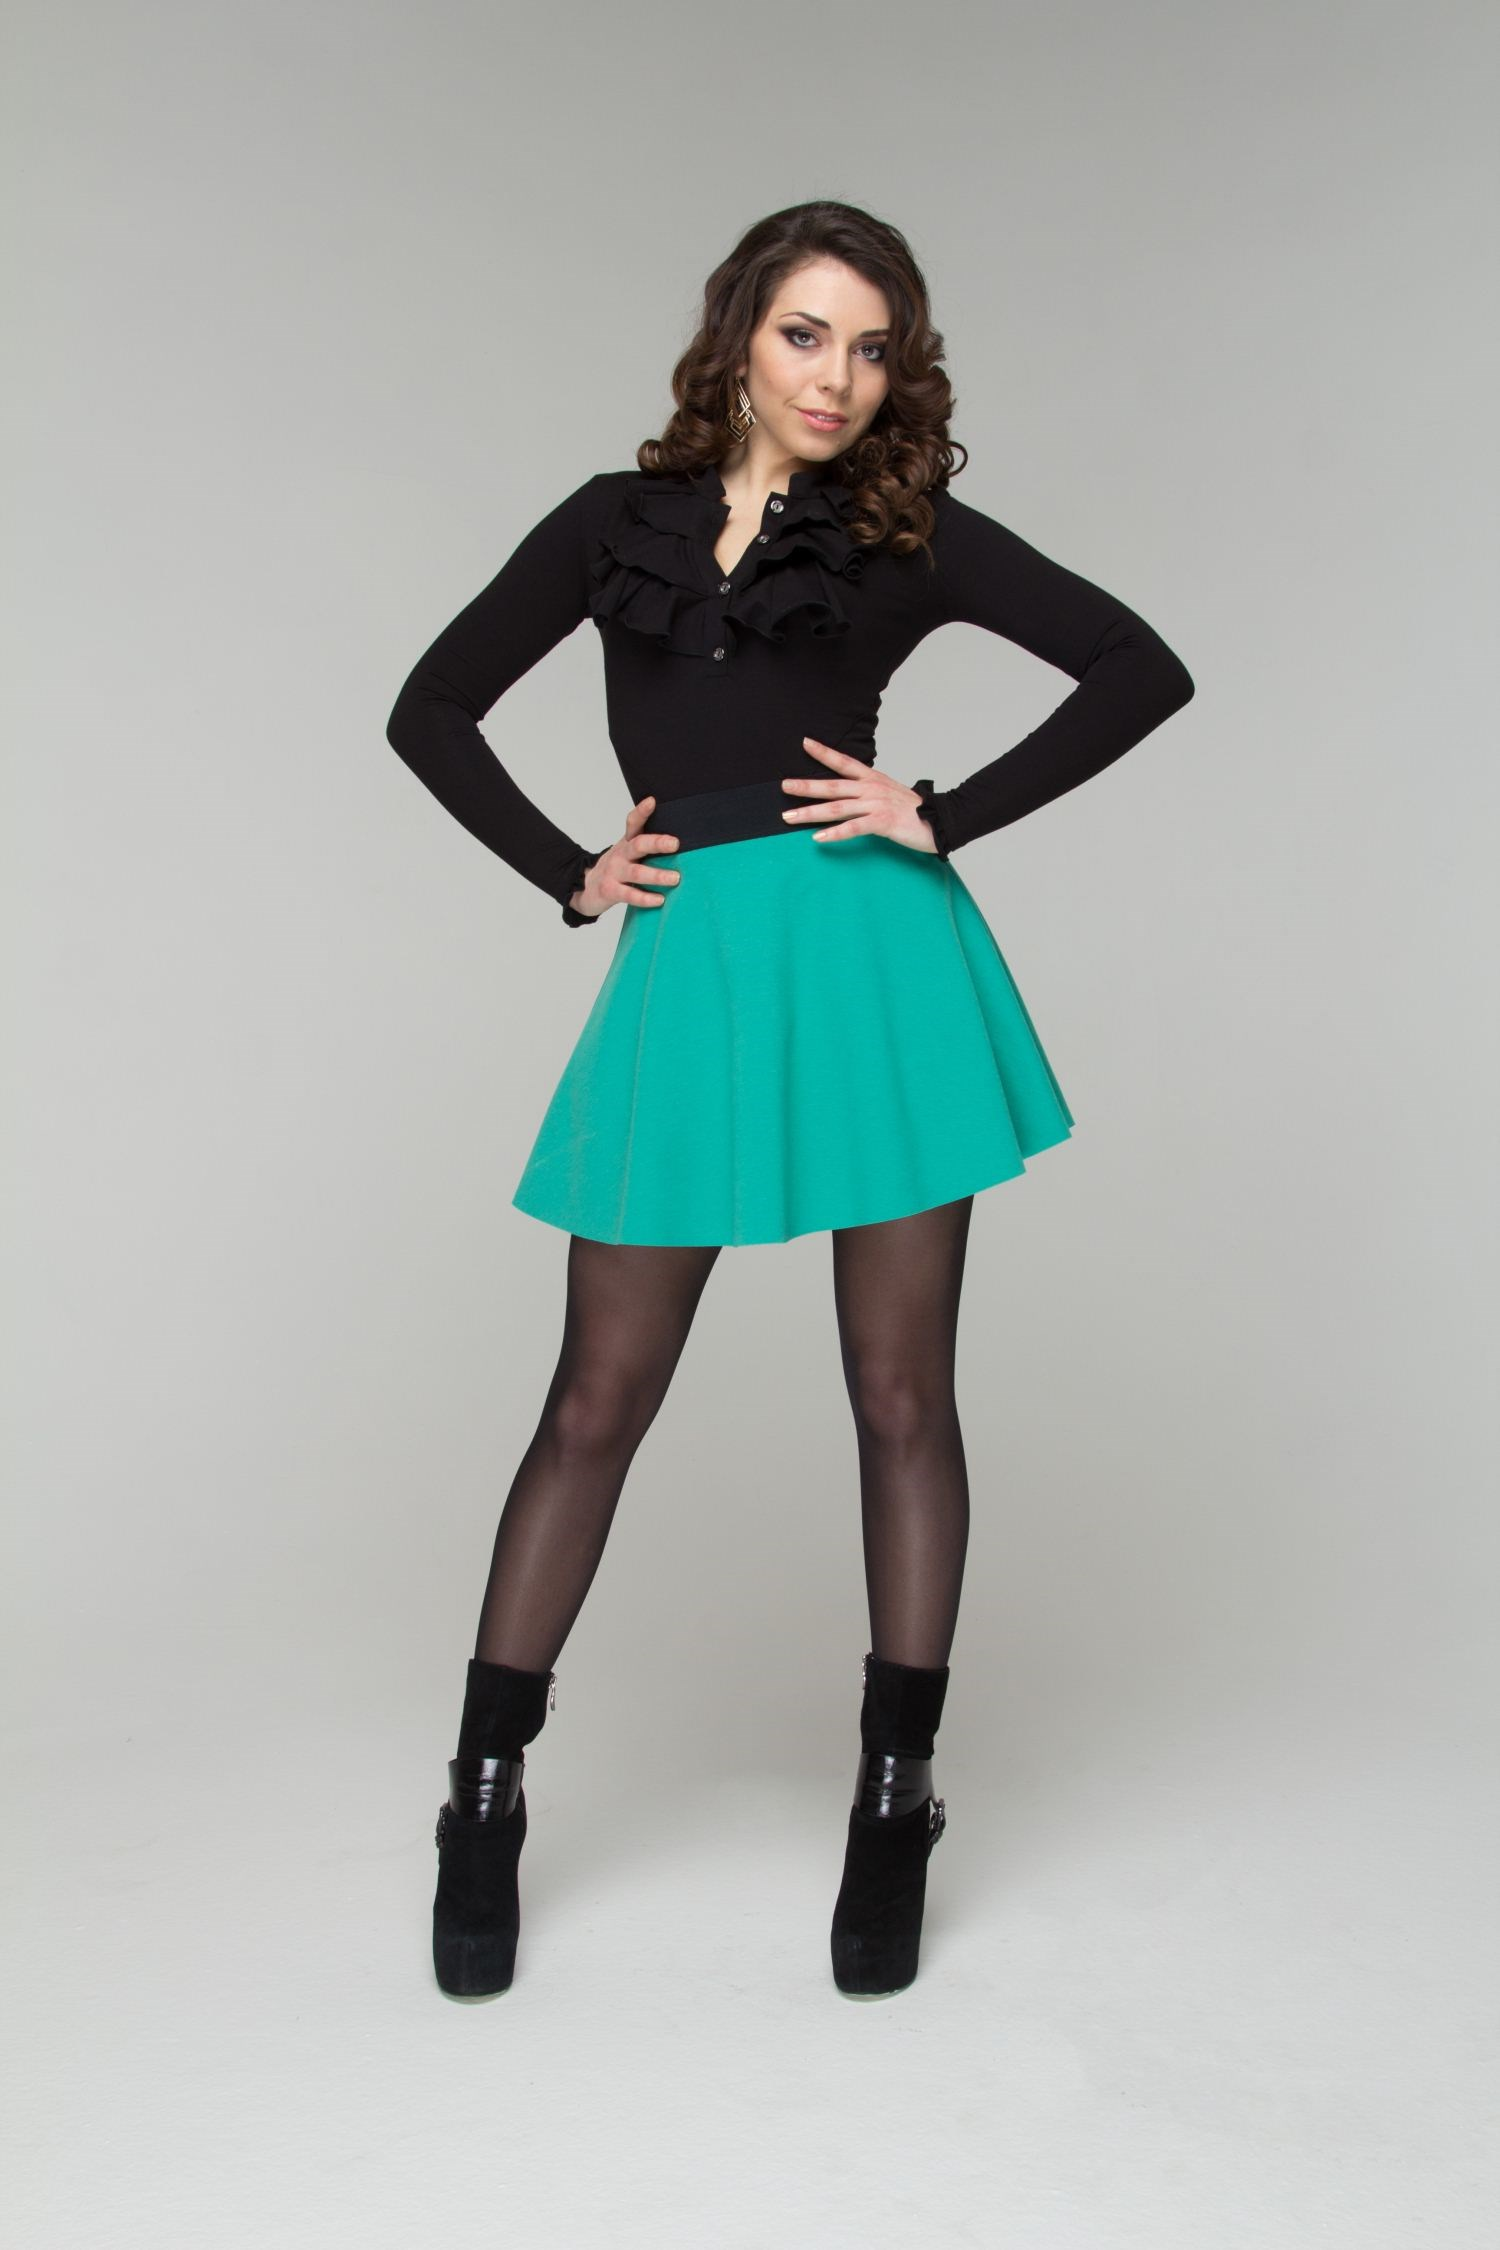 все цены на Short full skirt with belt with elastic band. онлайн